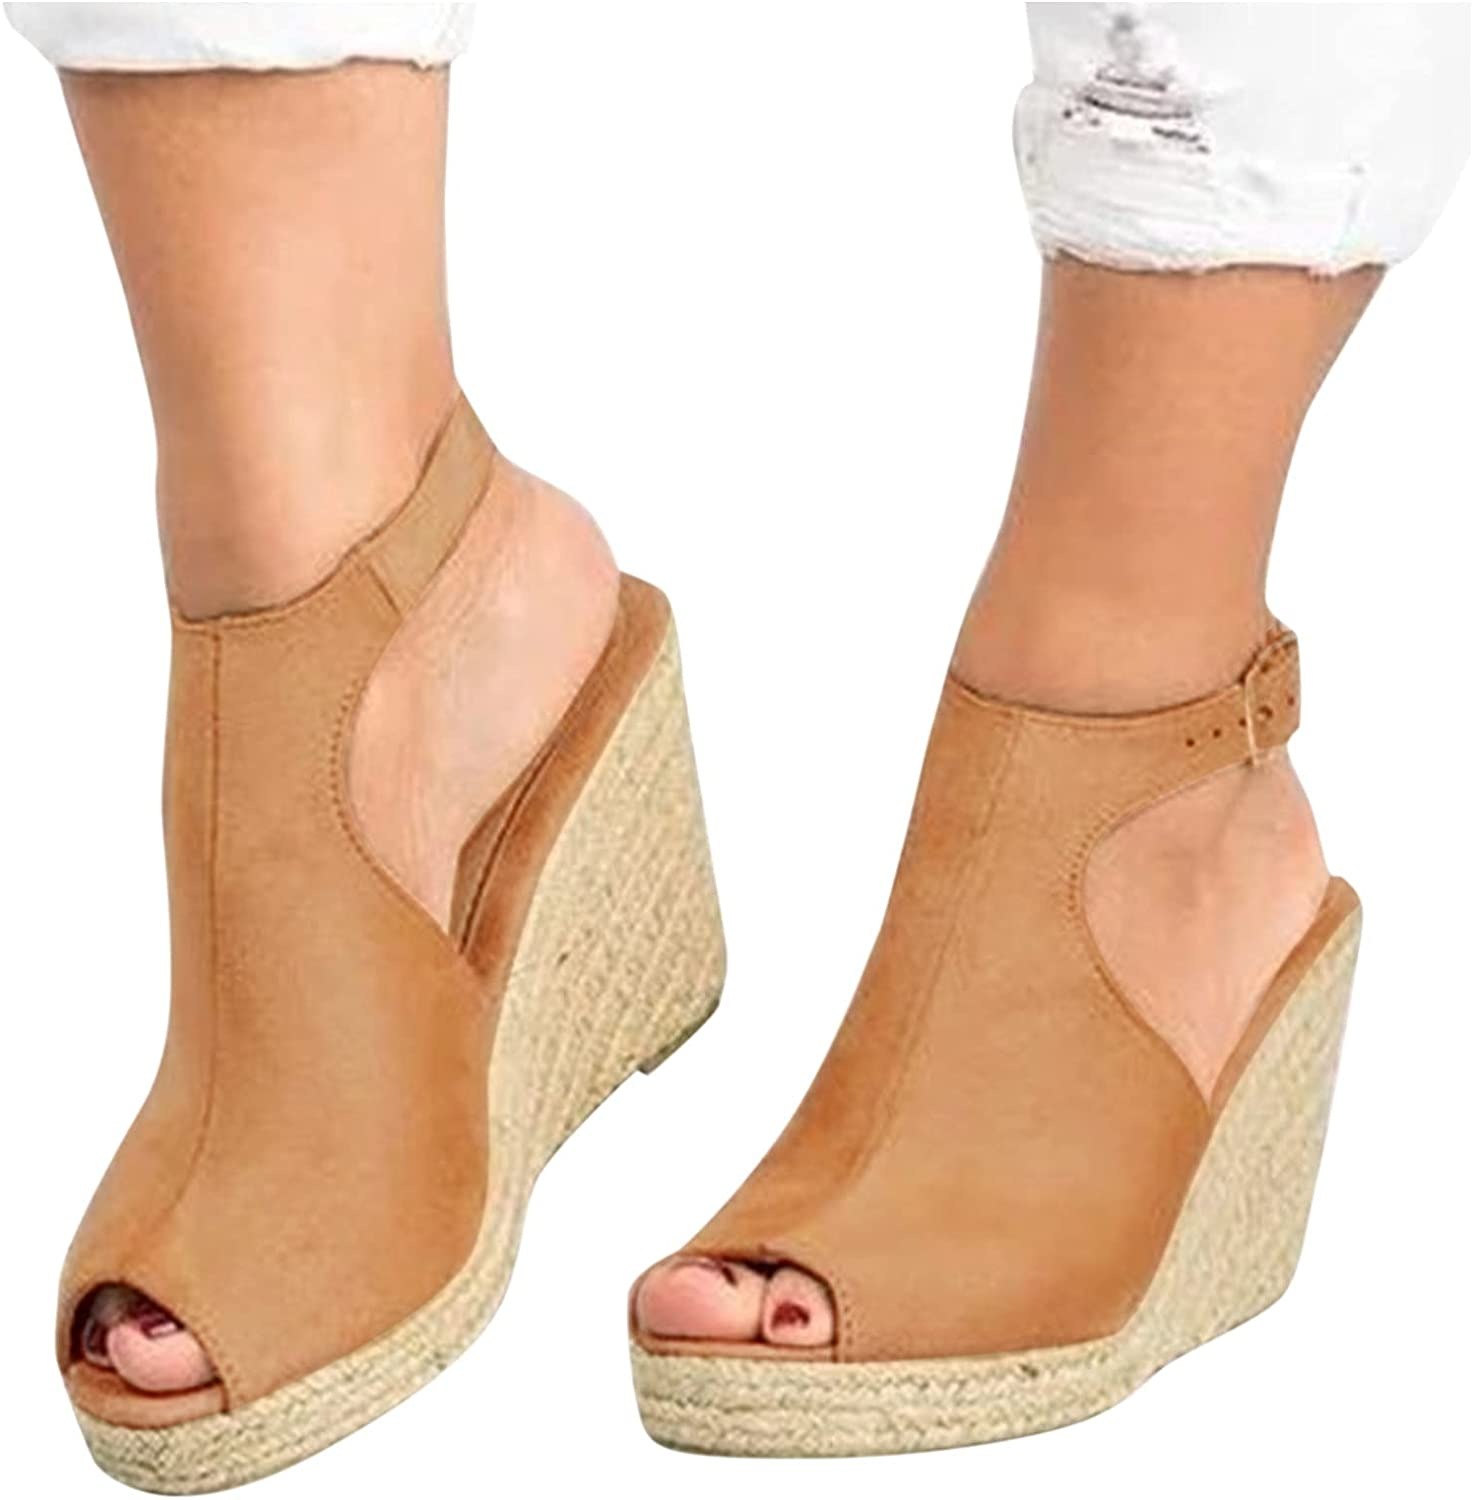 Niceast Sandals for Casual Summer,Women's Ankle Strap Sandals Open Toe Beach Platforms & Wedges